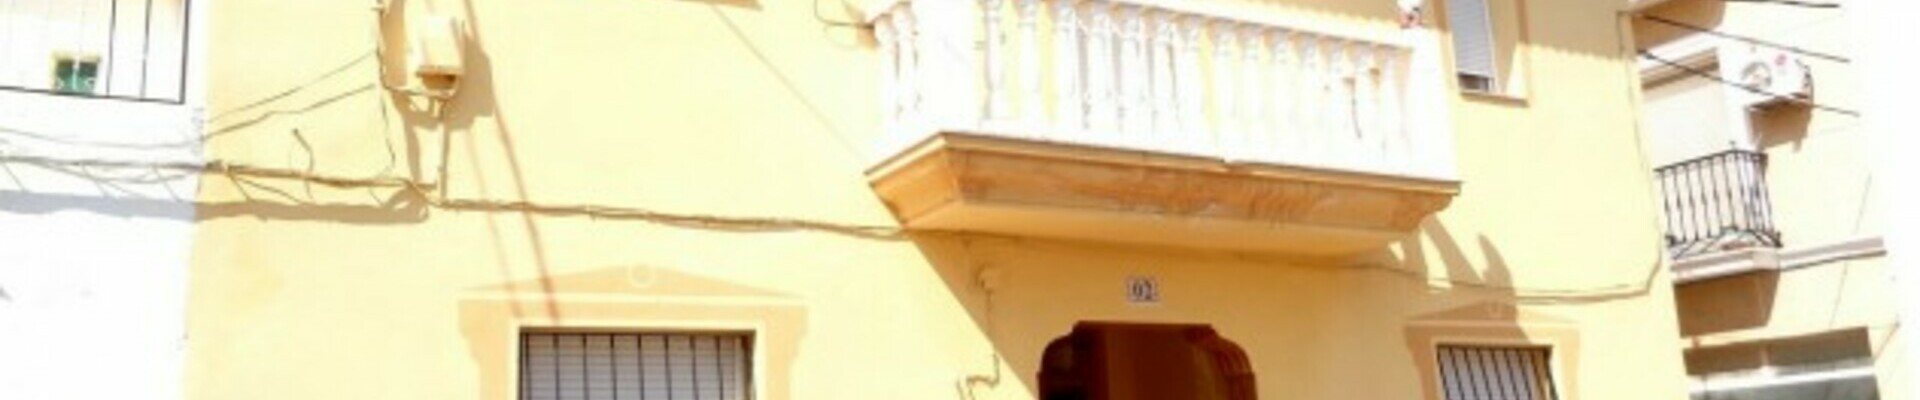 AF518: 4 Bedroom Townhouse for Sale